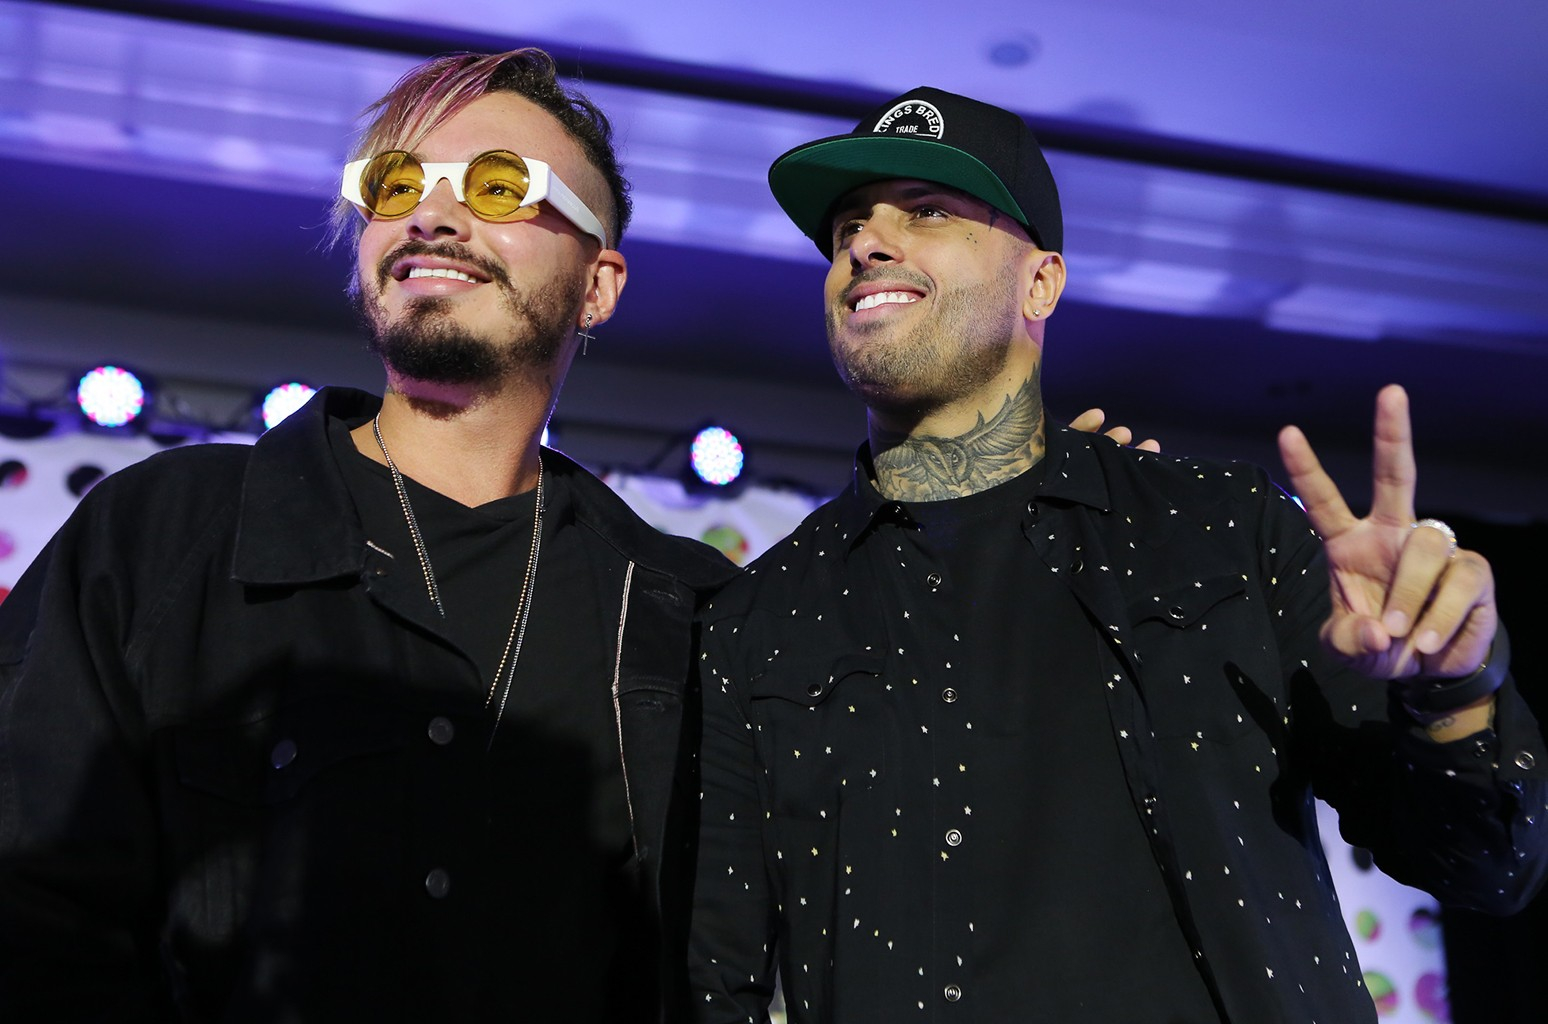 J Balvin and Nicky Jam during the Superstar Mano A Mano panel at the Billboard Latin Music Conference in Miami on April 26, 2017.